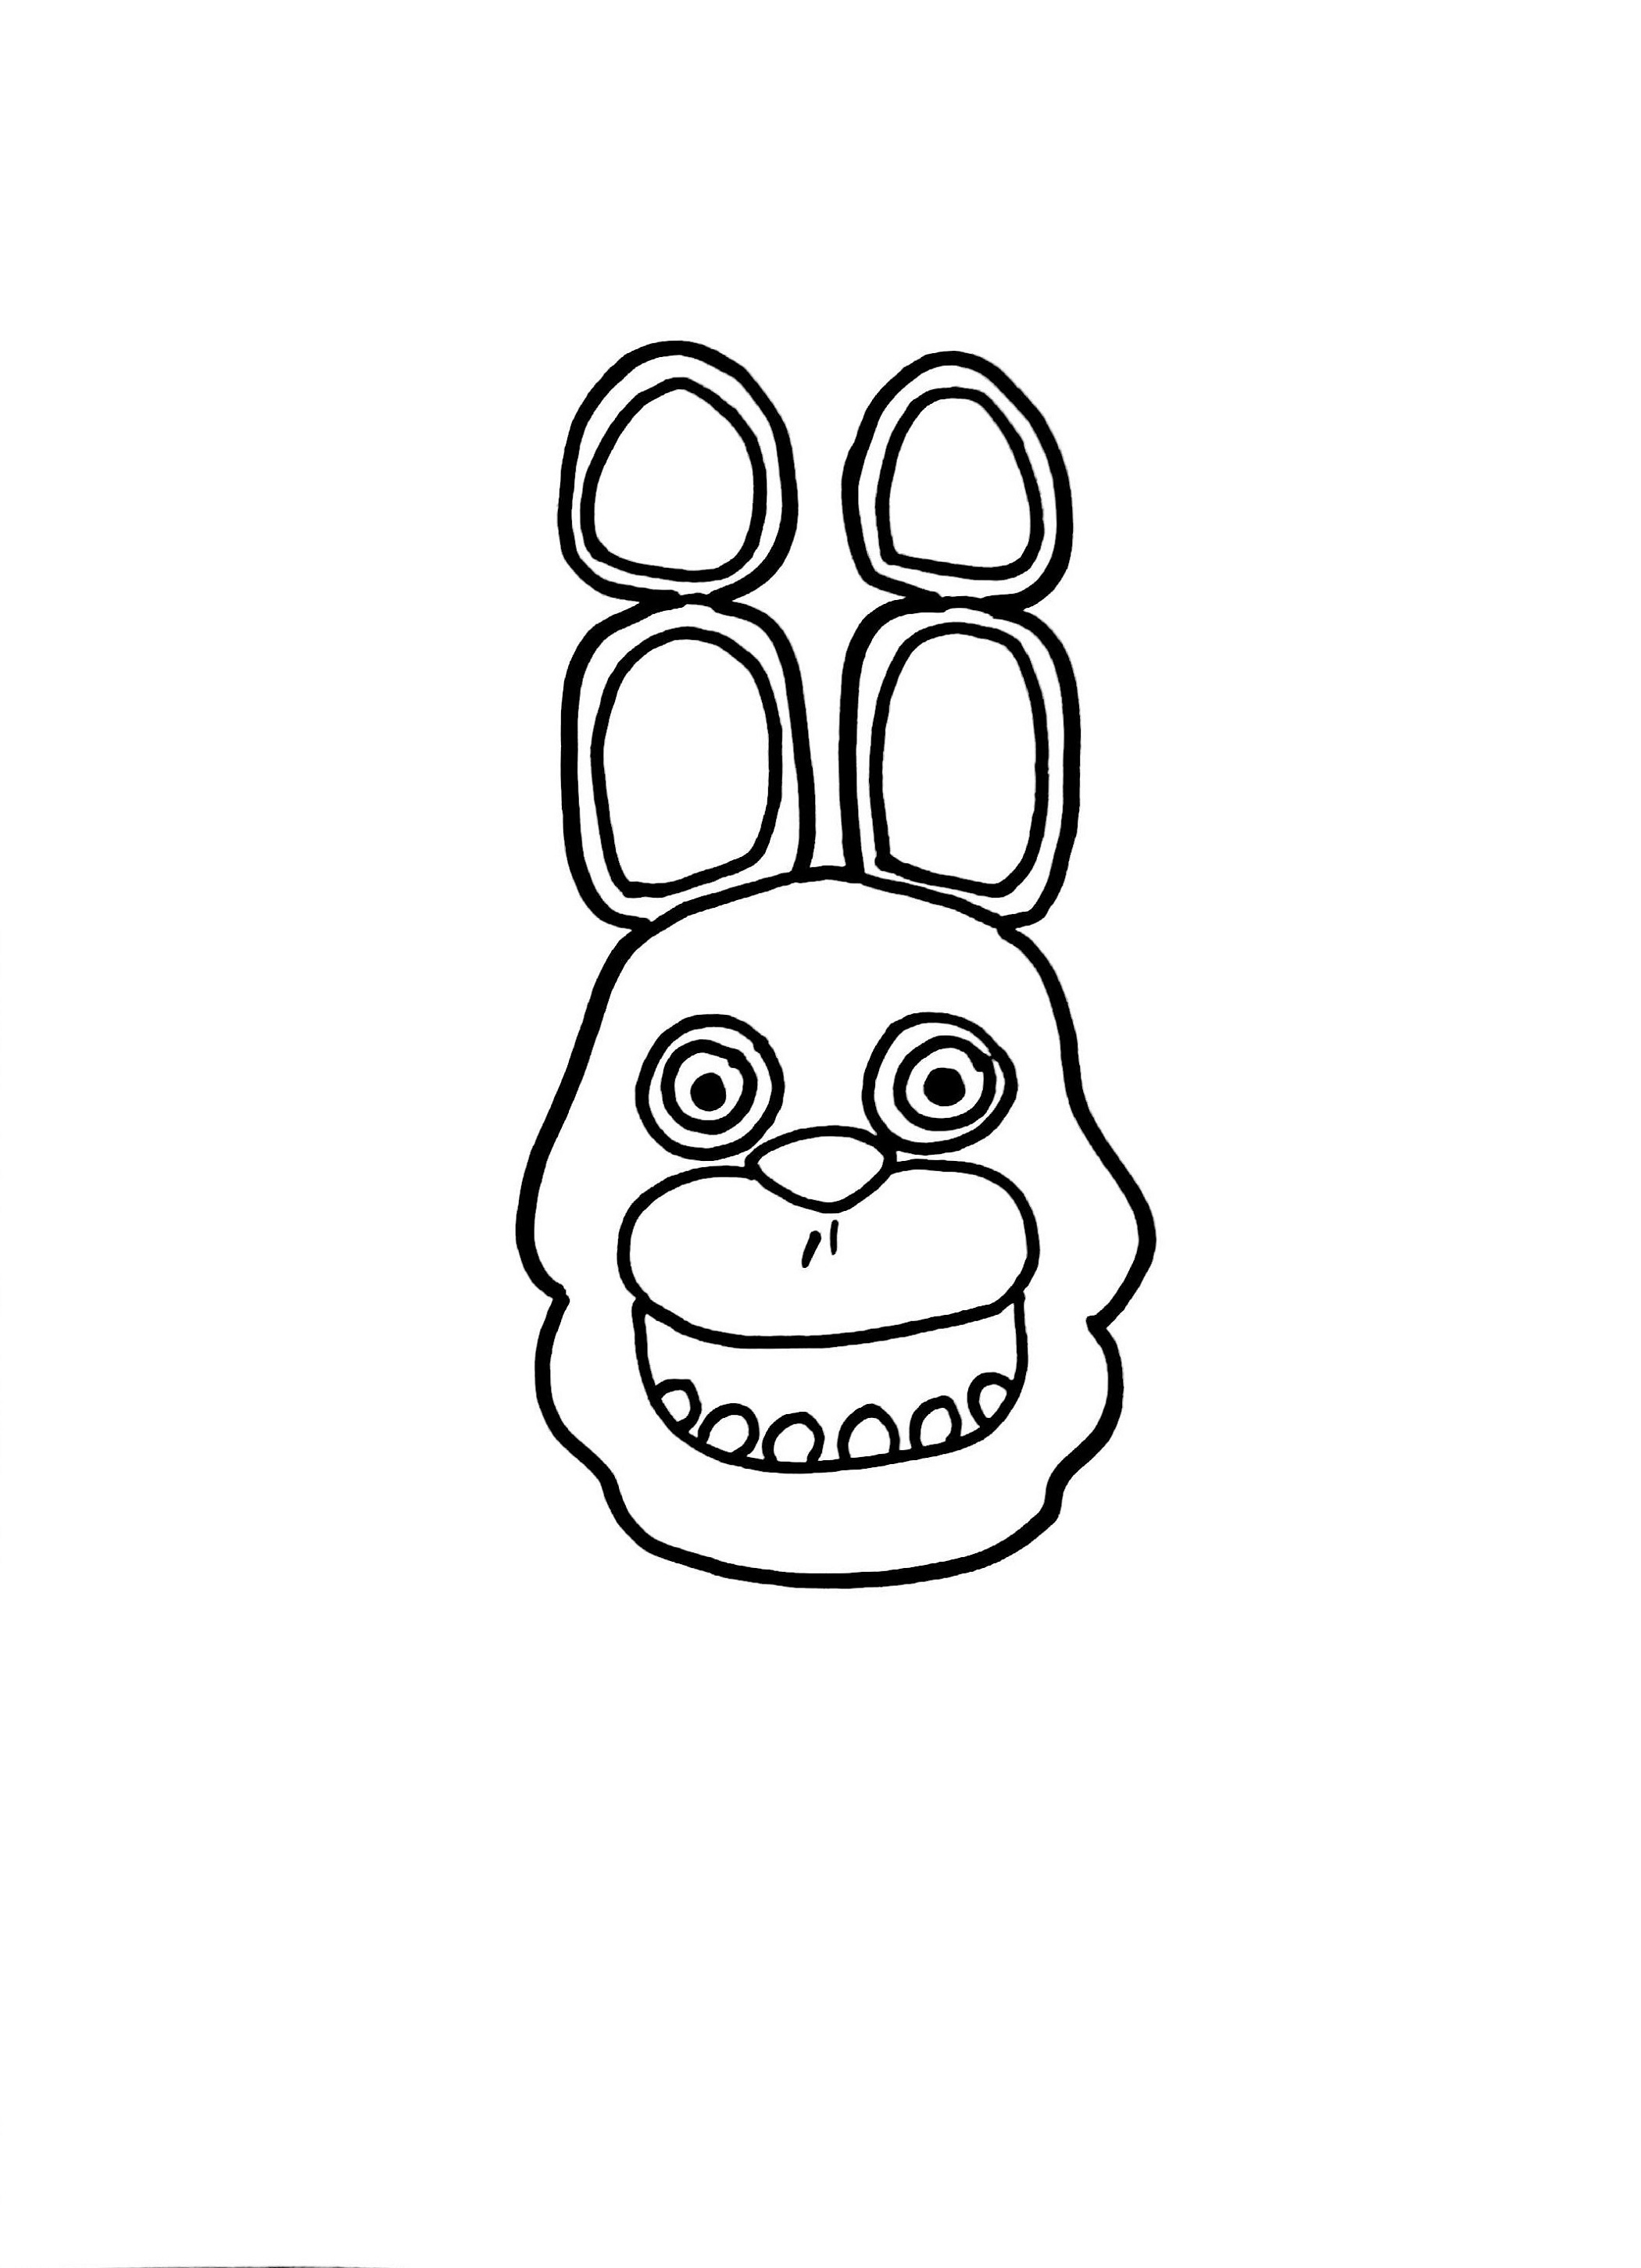 Five Nights At Freddy's Coloring Bonnie The Bunny